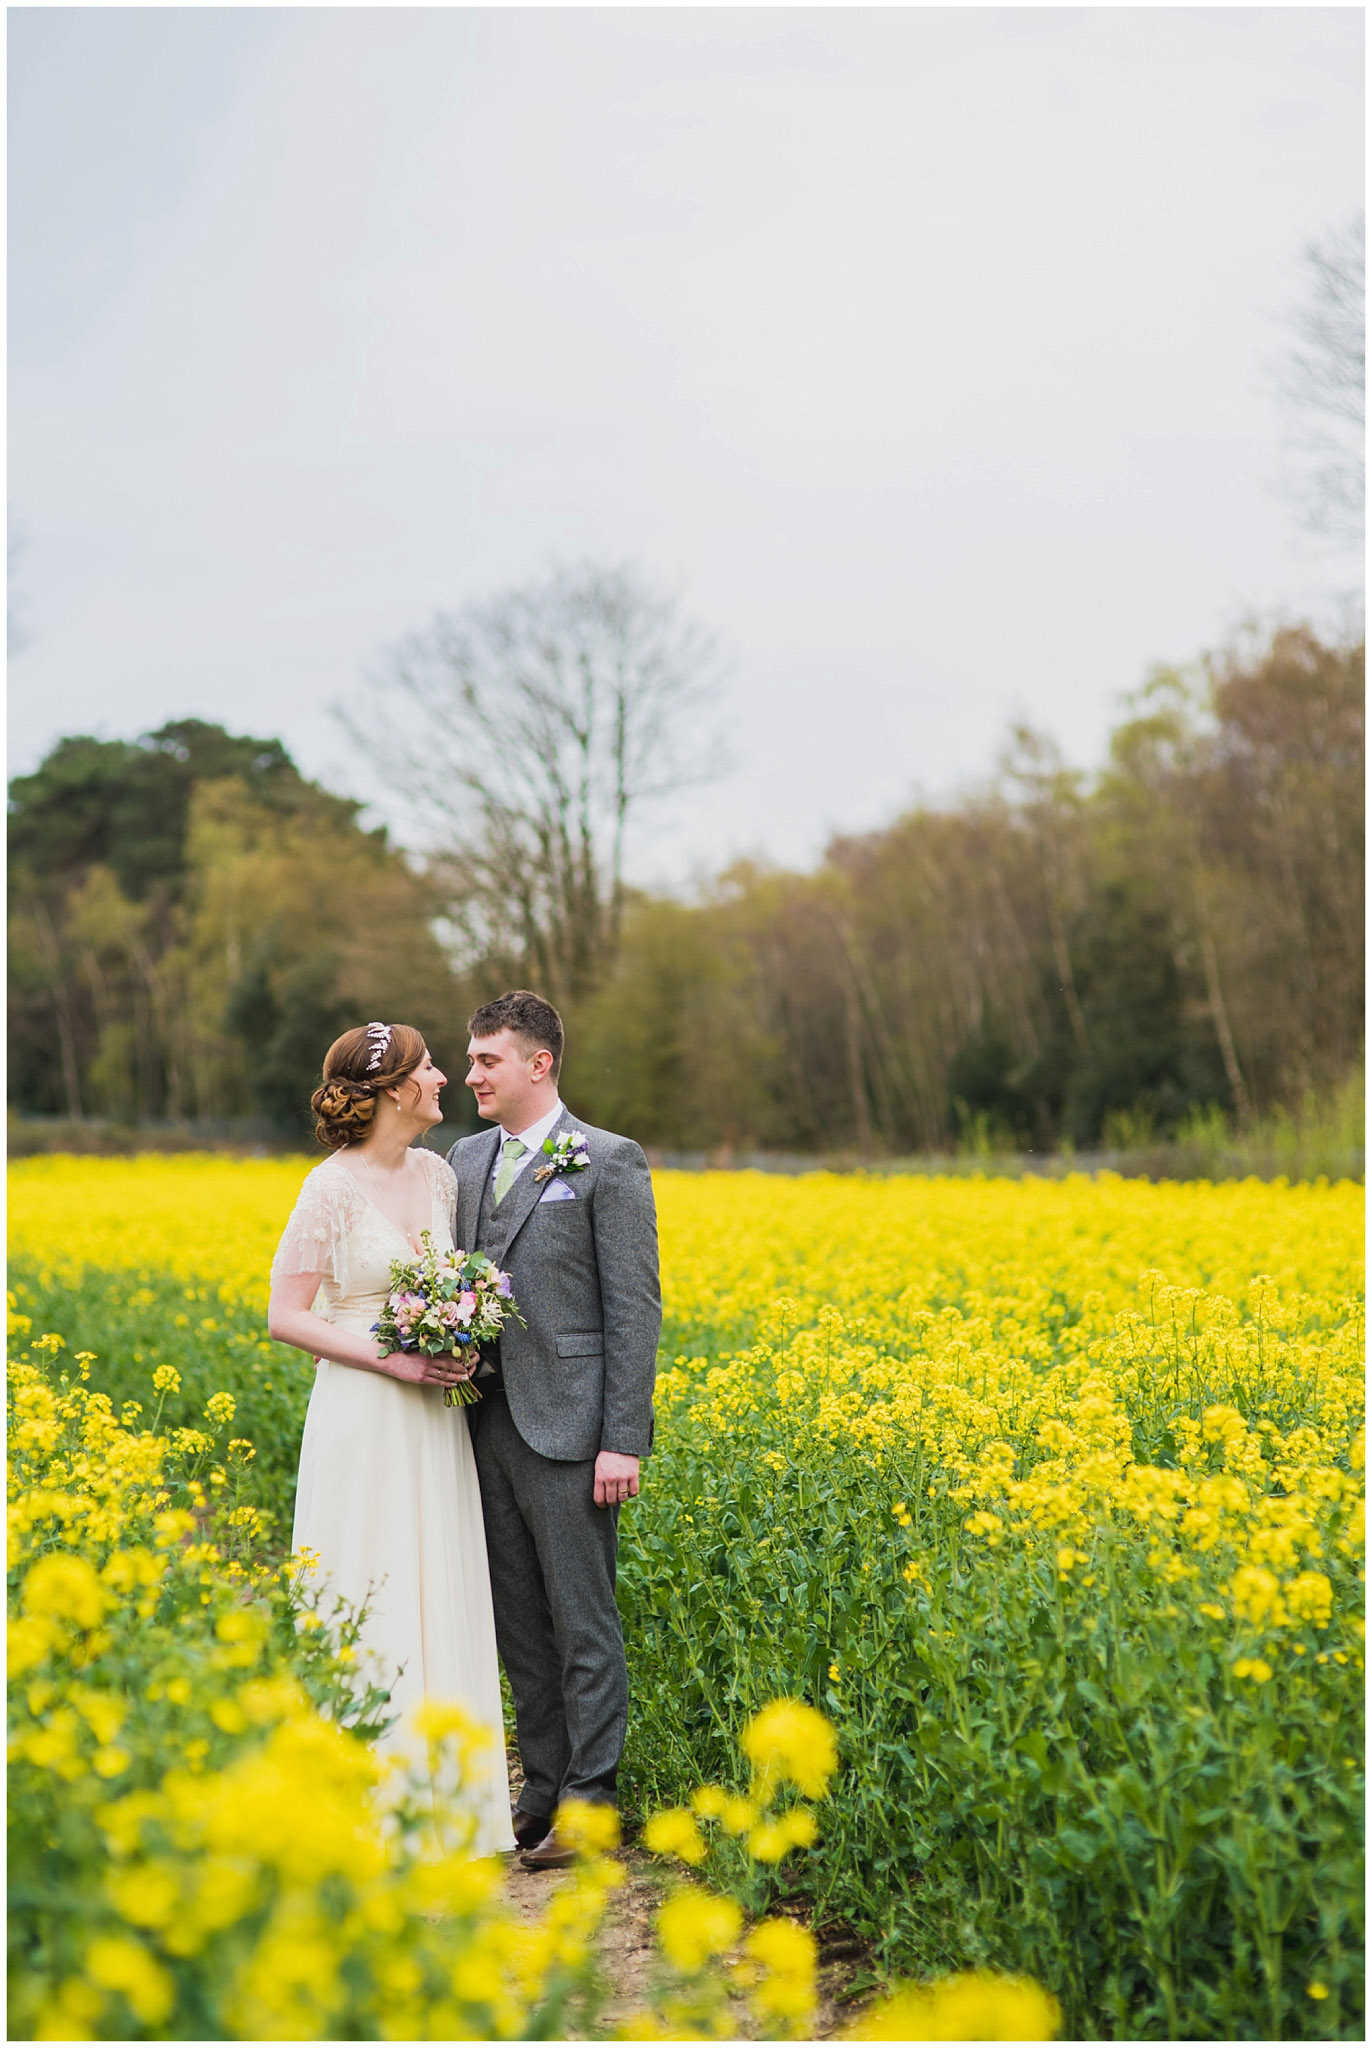 Sarah-&-Dan-The-Old-Vicarage-Wedding-Venue-Dorset-Photographer-29